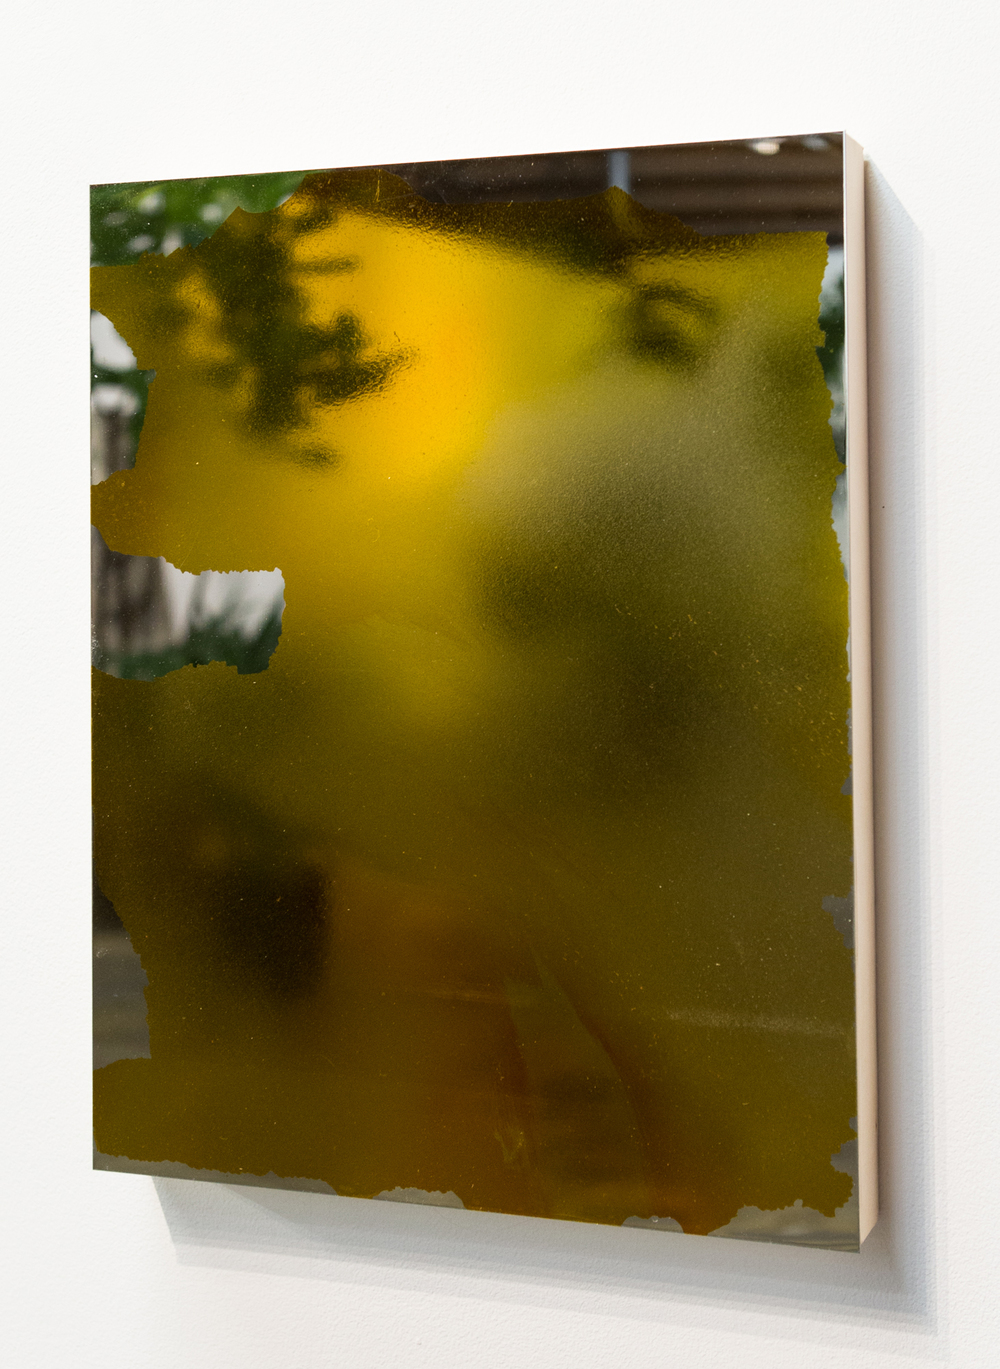 MLSL_15_Bunny, 2015  Gold tint on stainless steel  18 x 14 in (45.72 x 35.56 cm)